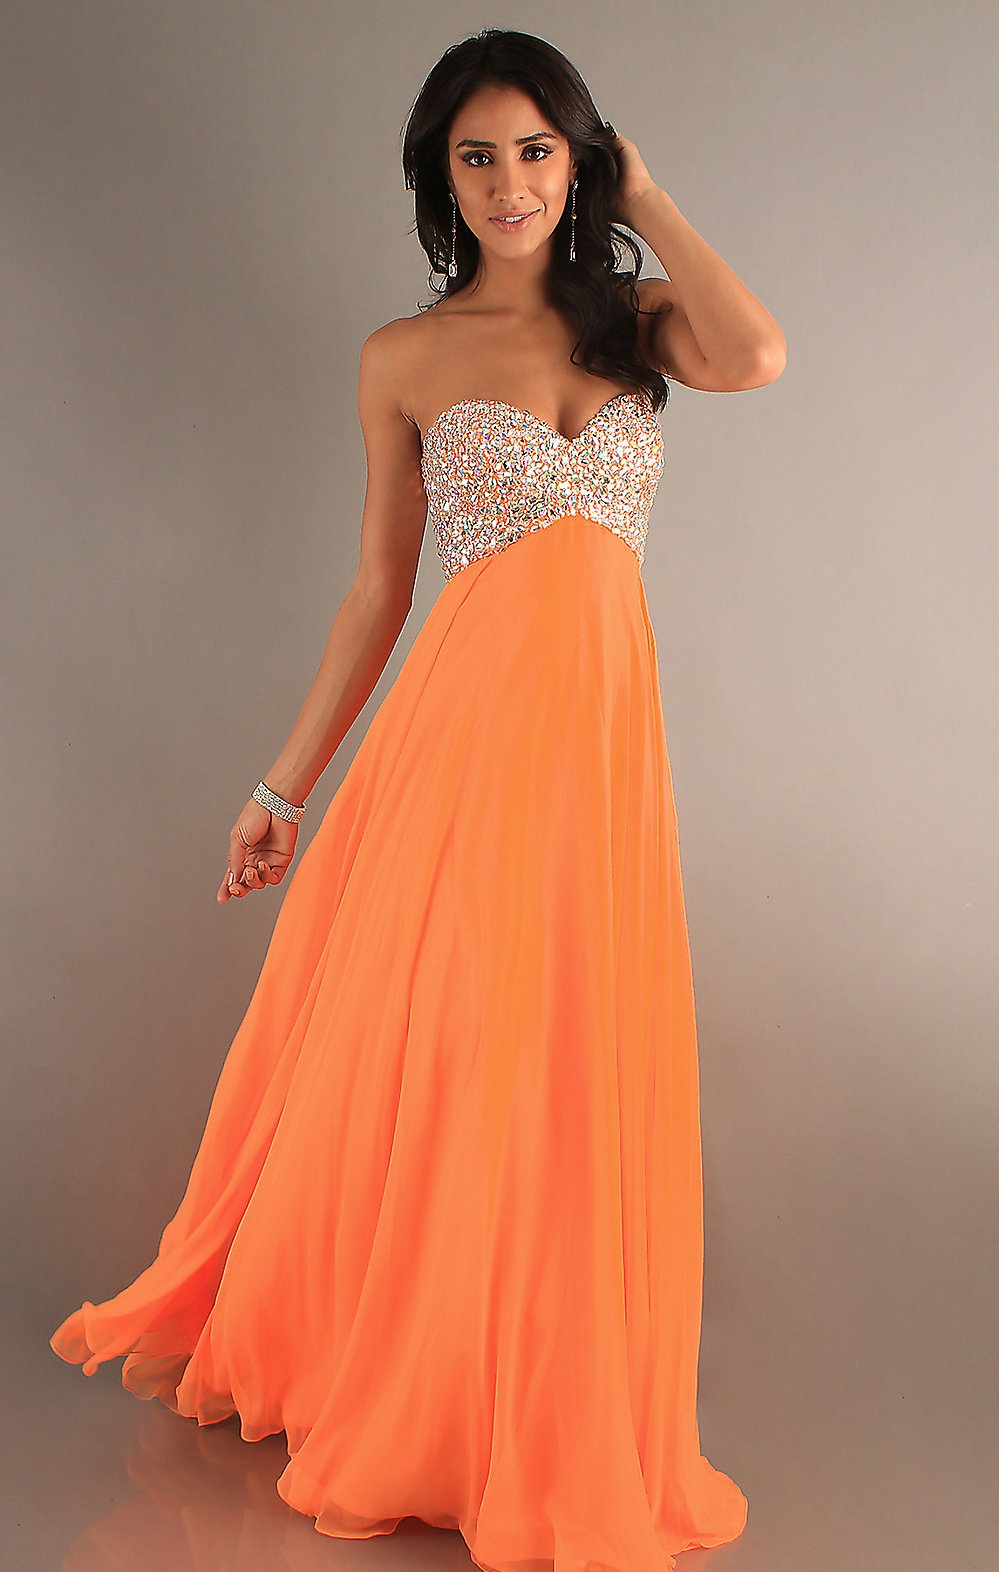 Chin Length Hairstyles 2012 Orange Prom Dresses Can Give